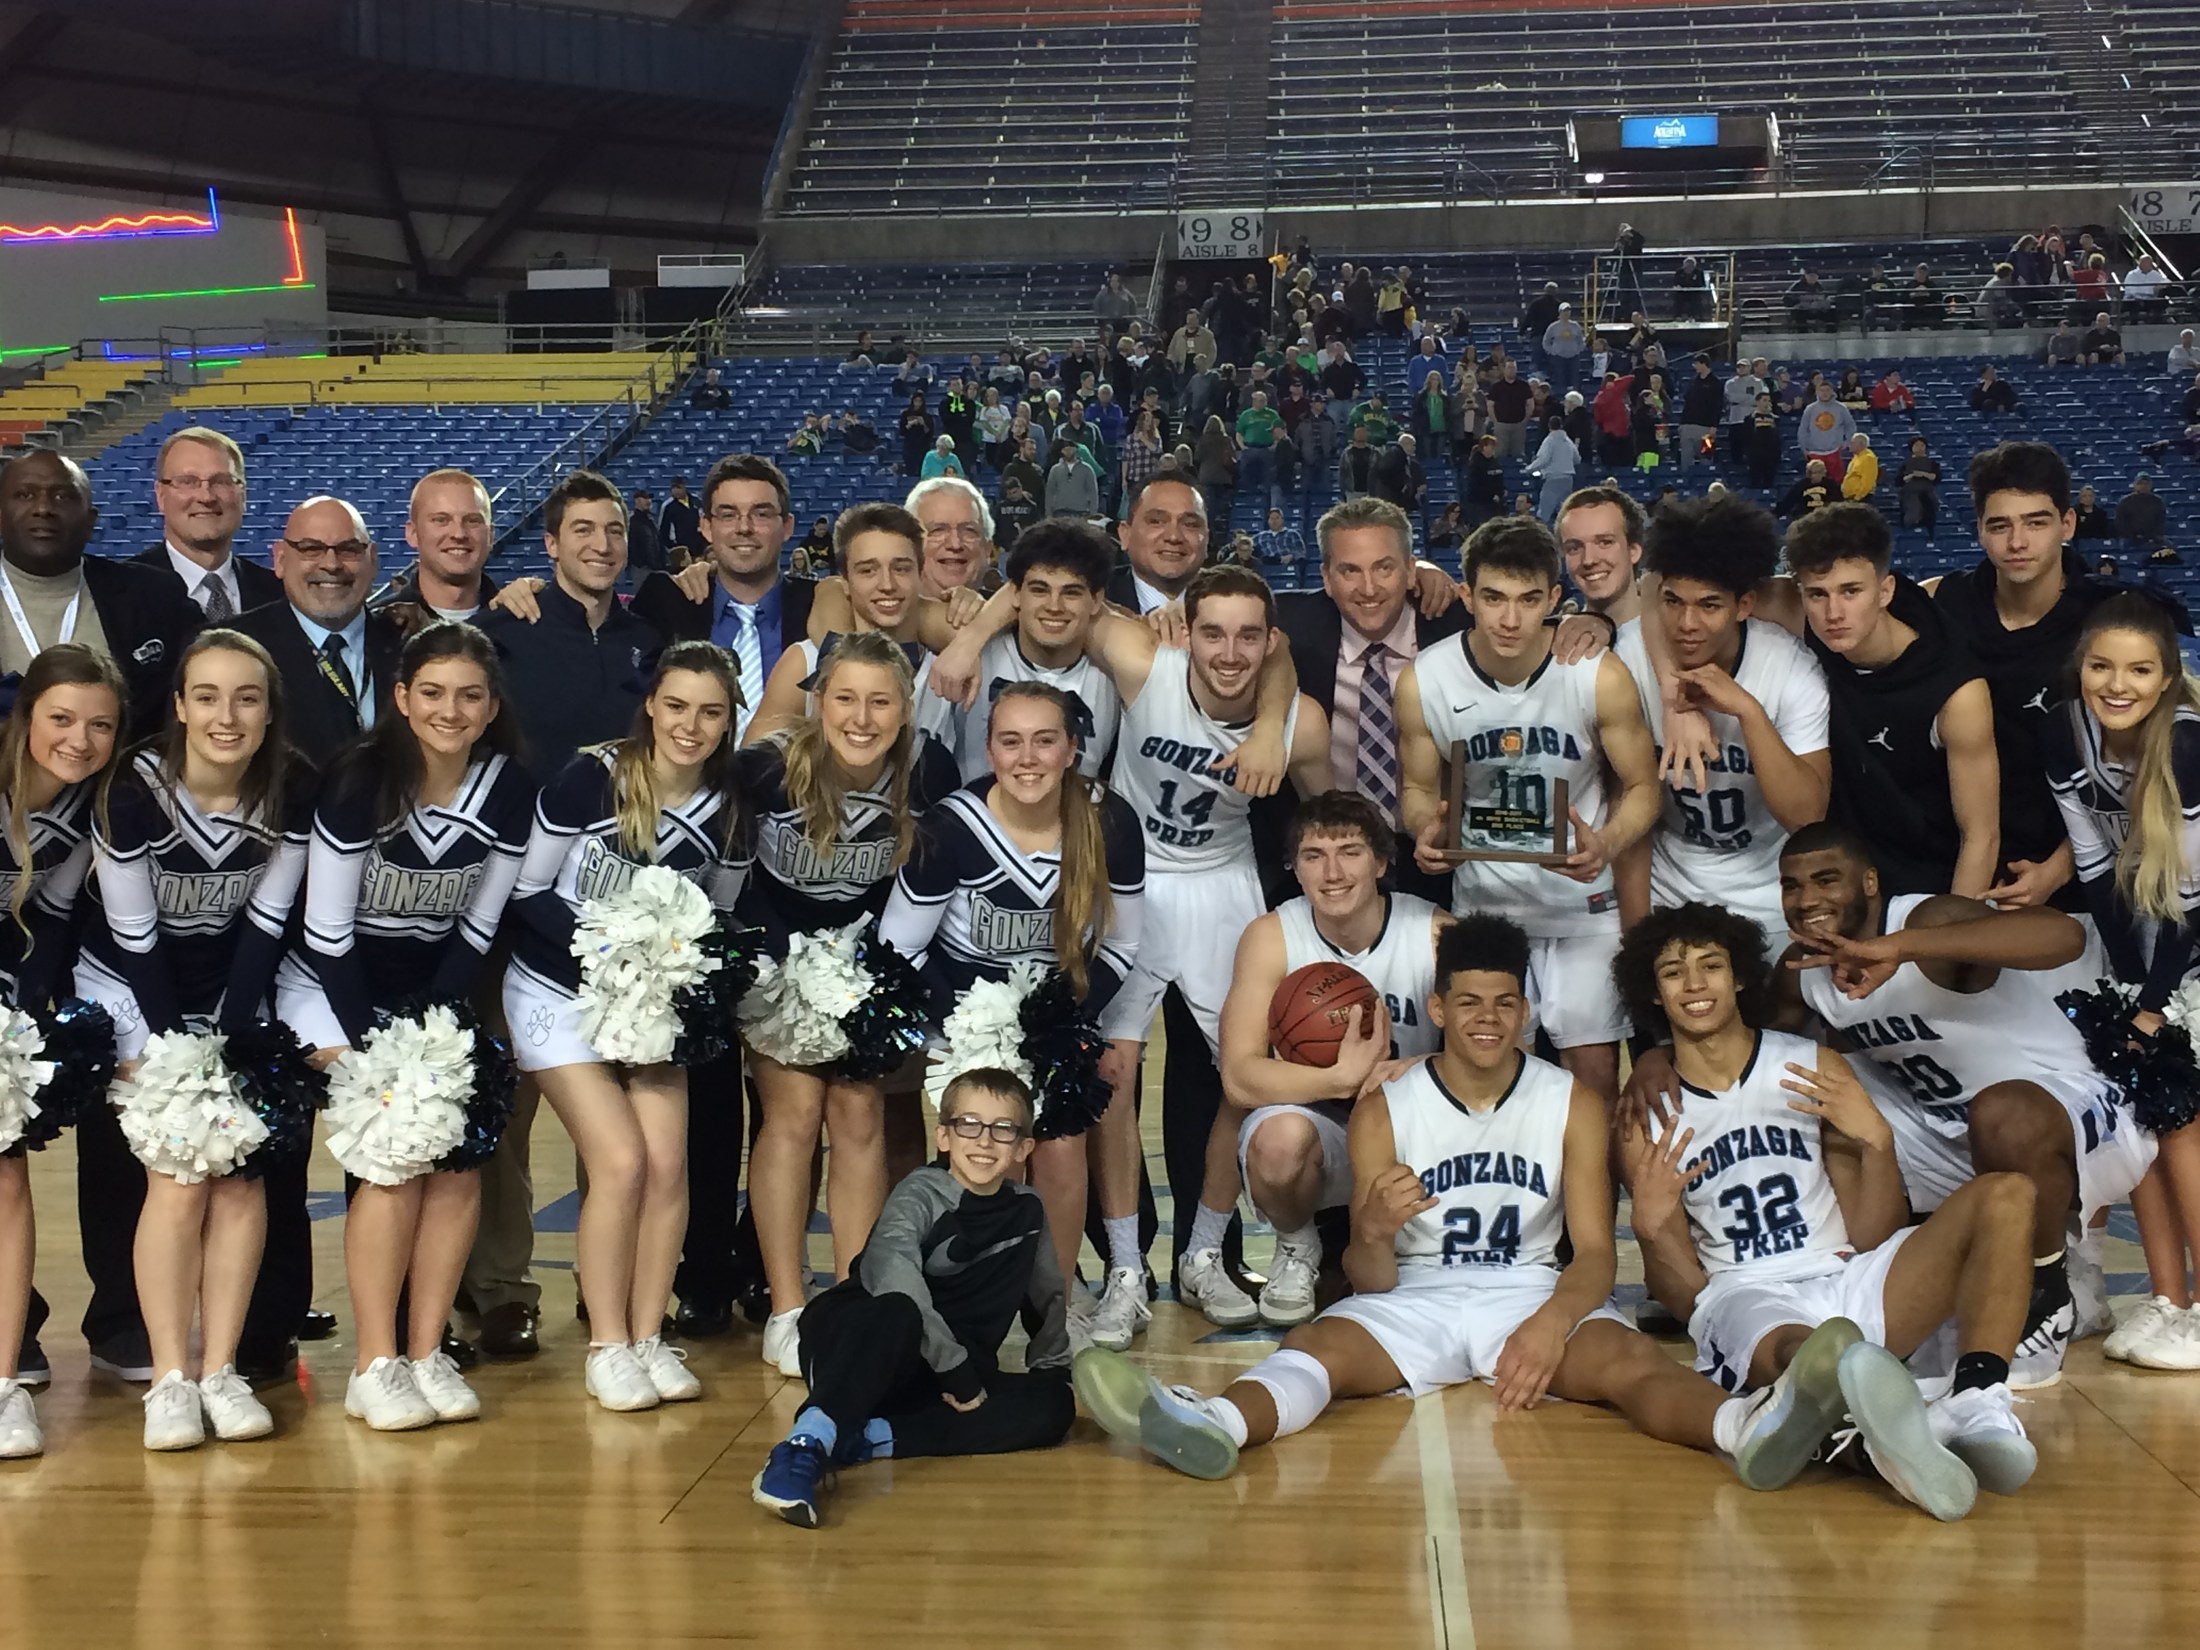 boys basketball 3rd place at state